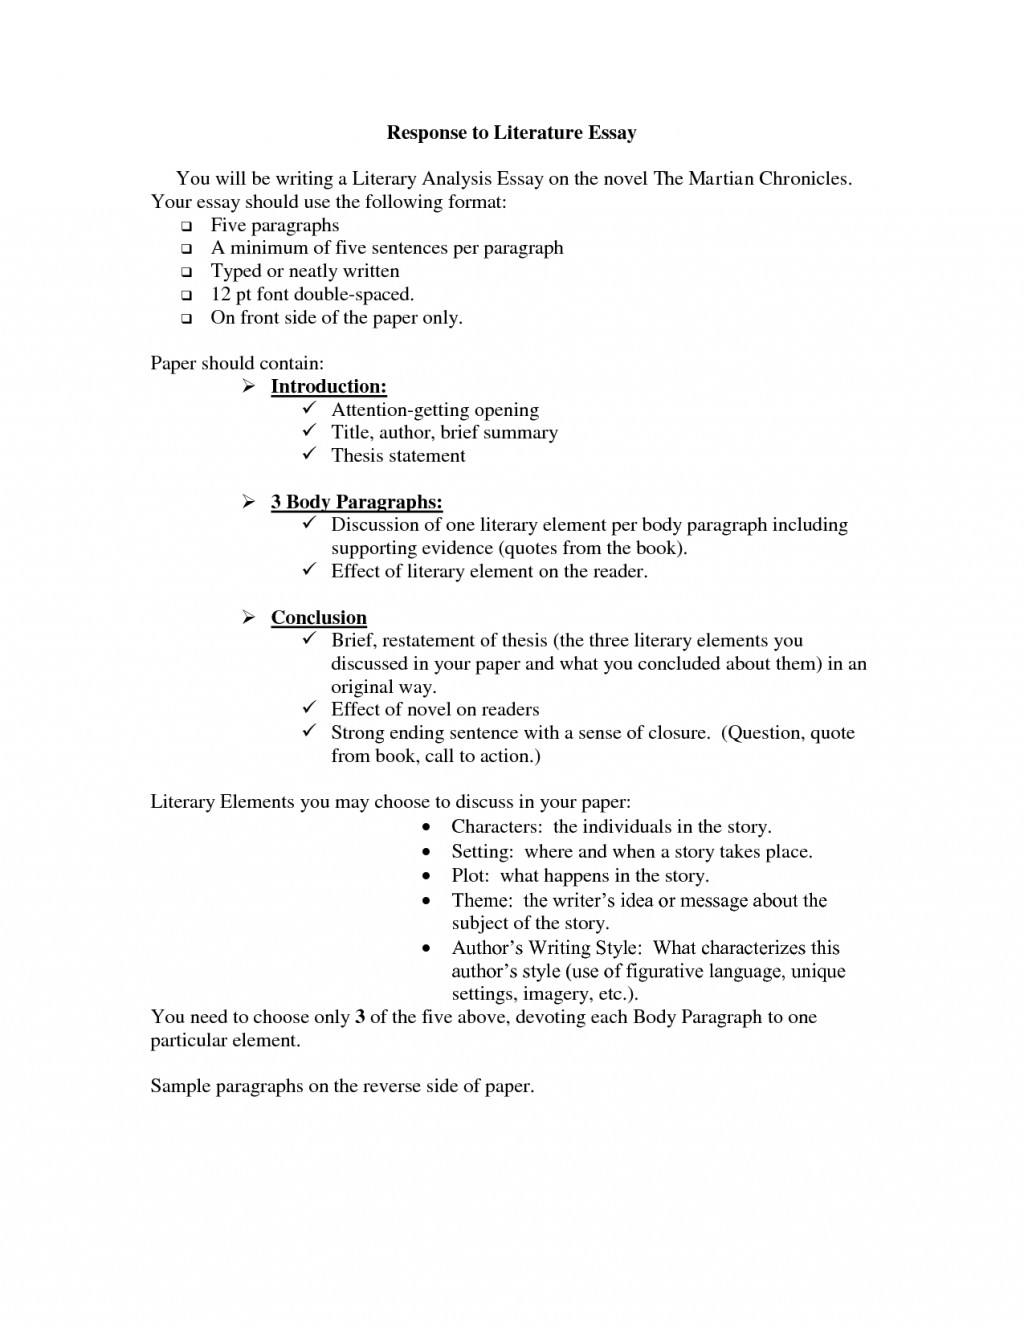 002 Literary Essay Help Responseature Character Sketch Macbeth Introduction College To Example 5th Grade 10th 8th 4th Examples Student Responding Sample 9th High School 6th 3rd How Write Shocking A On Large